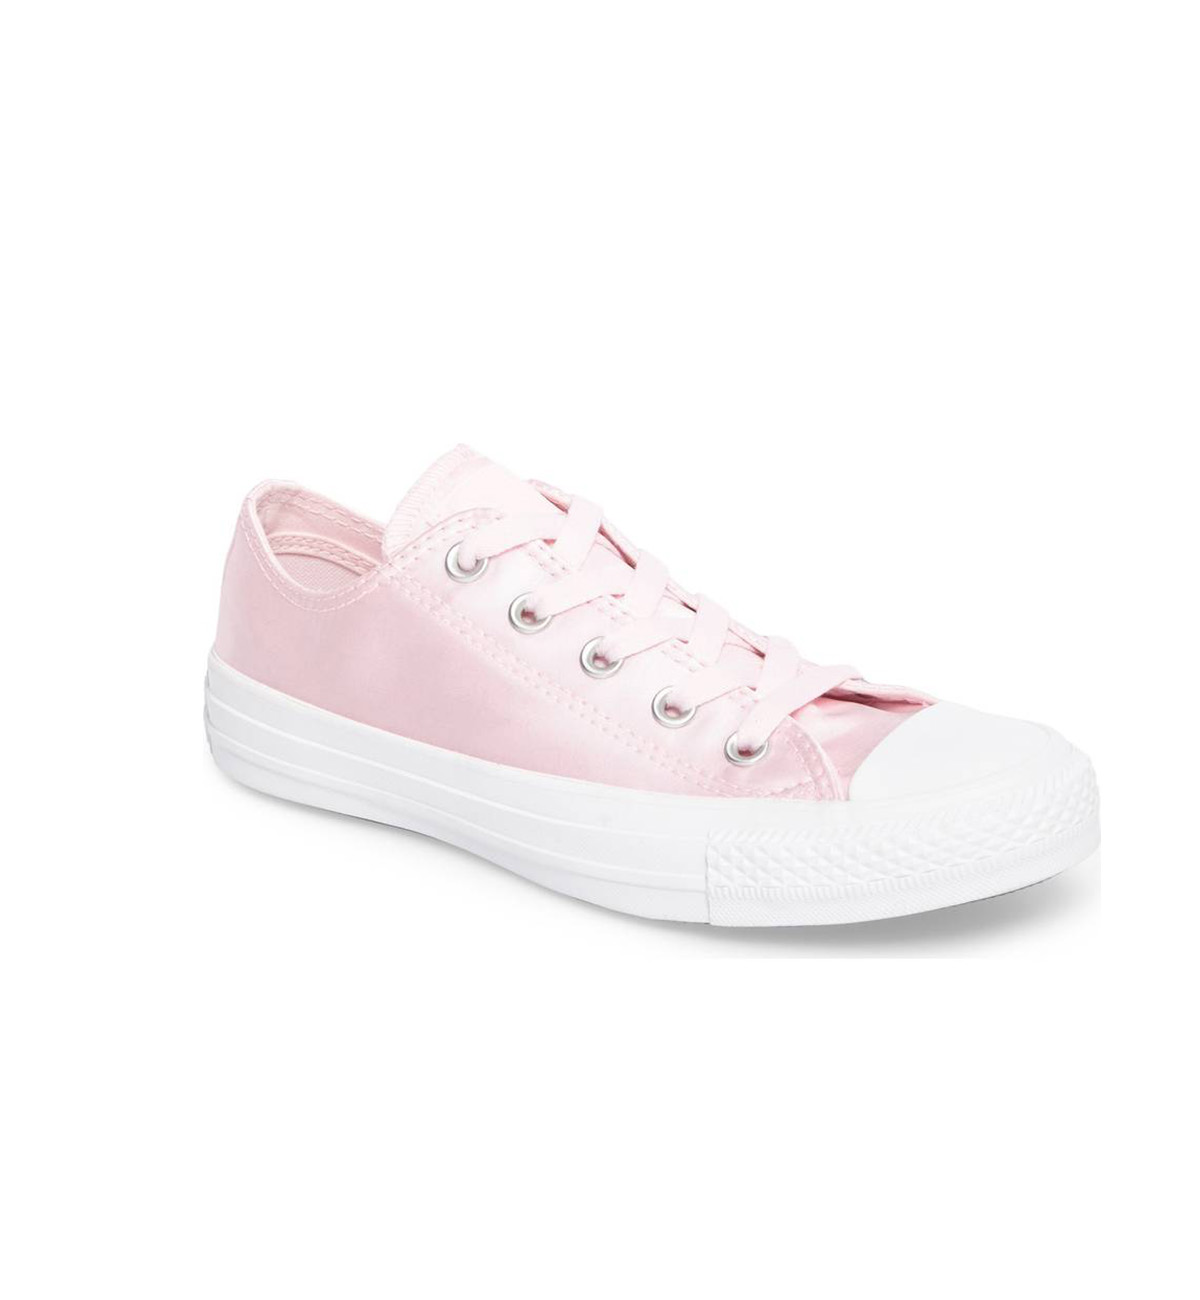 Chuck Taylor Pink Satin Sneakers